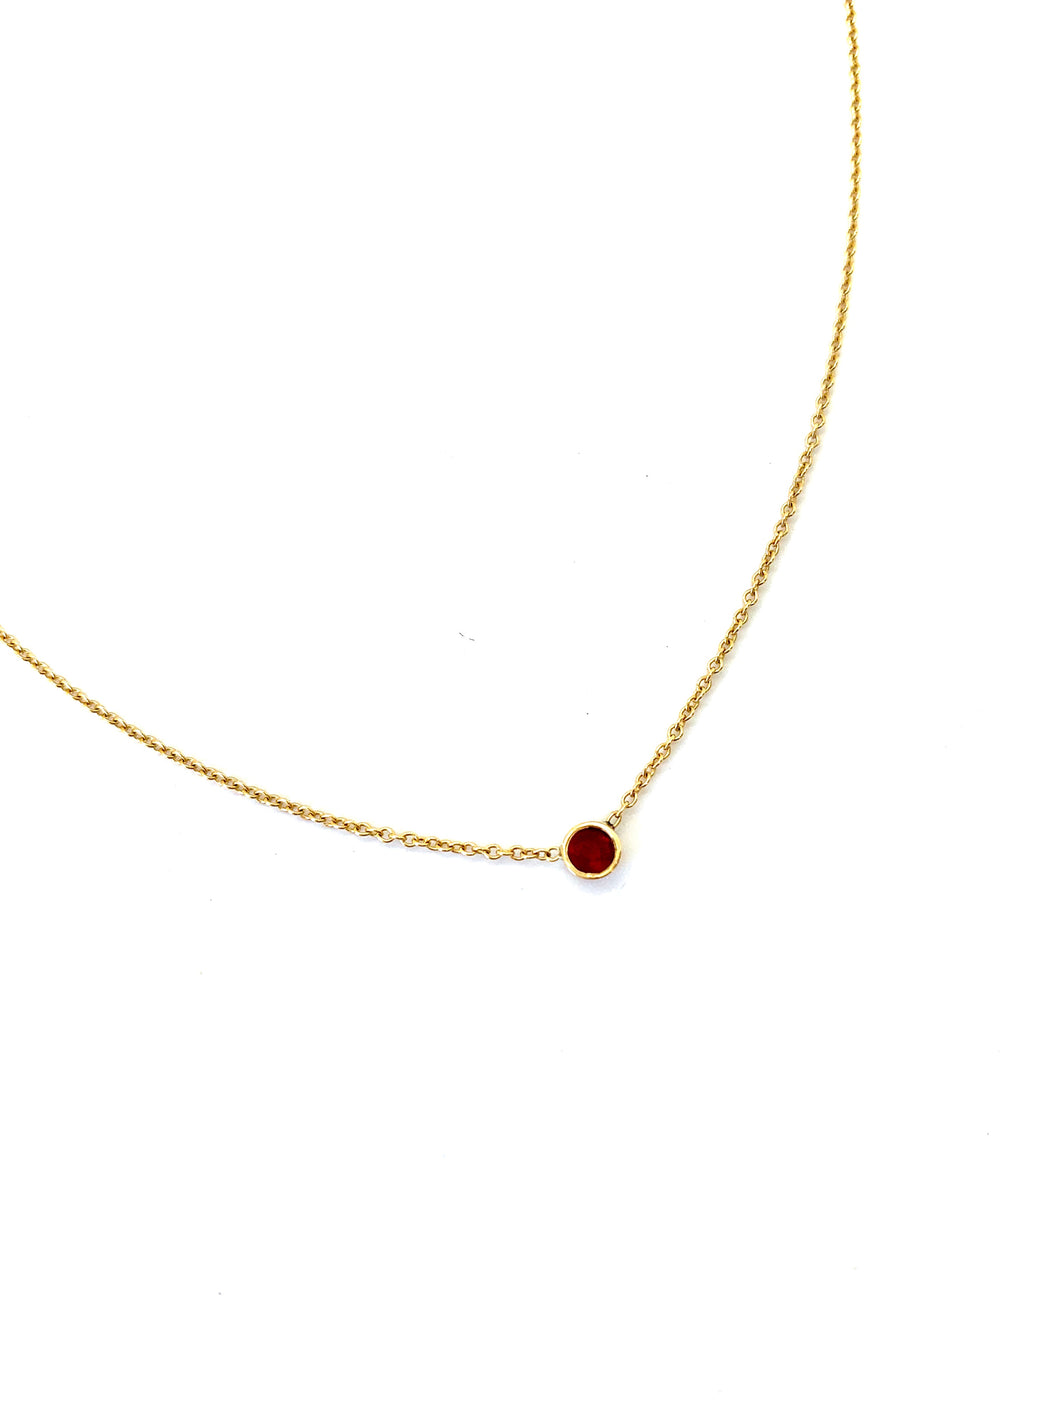 Materials include a 16-inch 14k yellow gold chain w/ a 3mm ruby gemstone